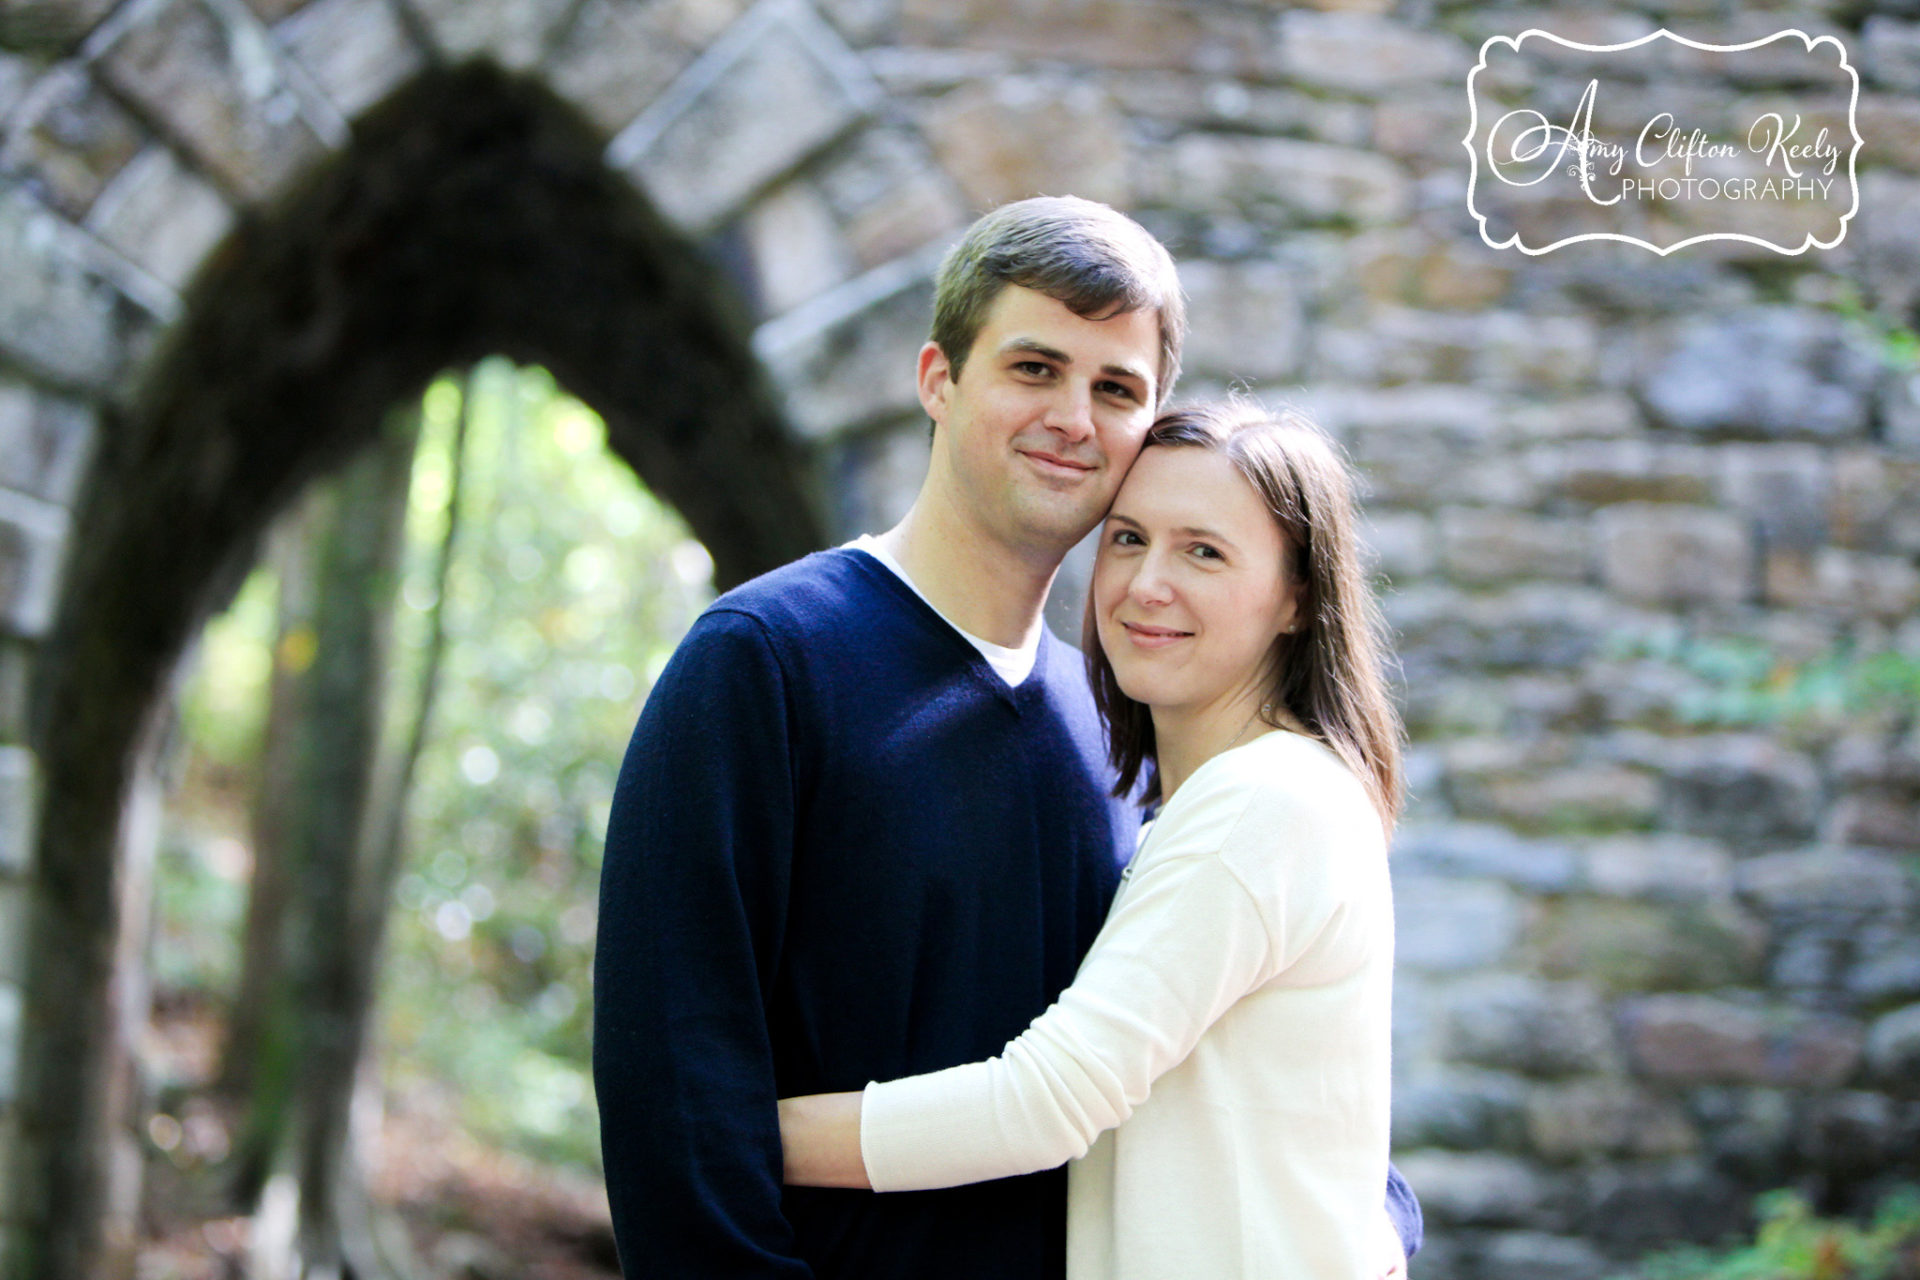 Poinsett Bridge Greenville SC Family Portraits Amy Clifton Keely Photography 15